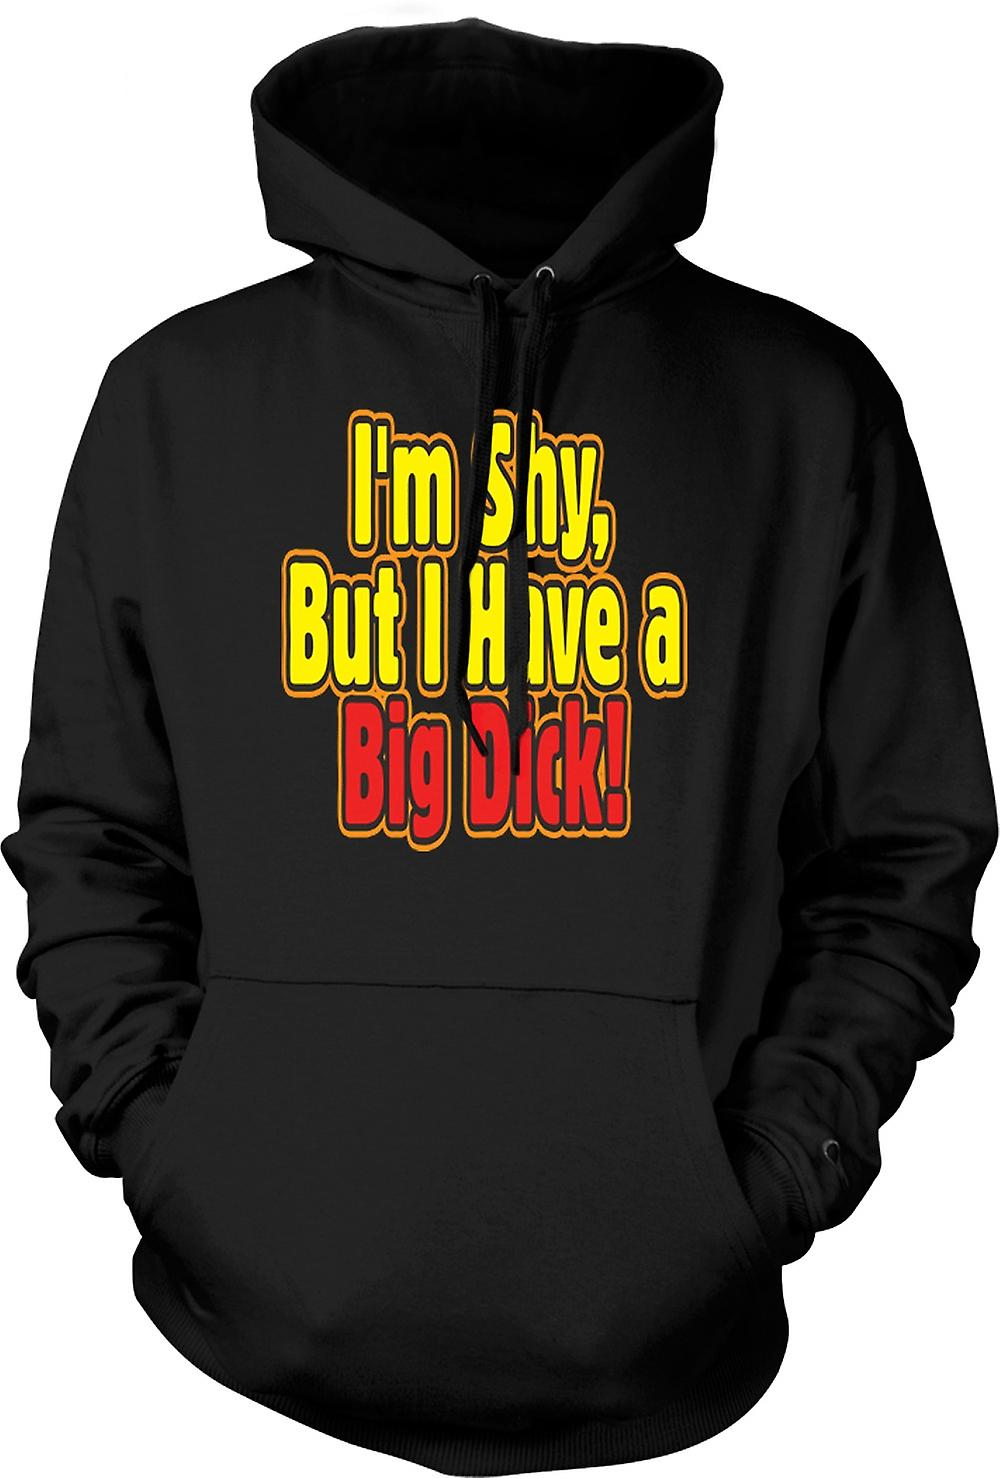 Mens Hoodie - Je suis timide mais je dois Big Dick! - Quote